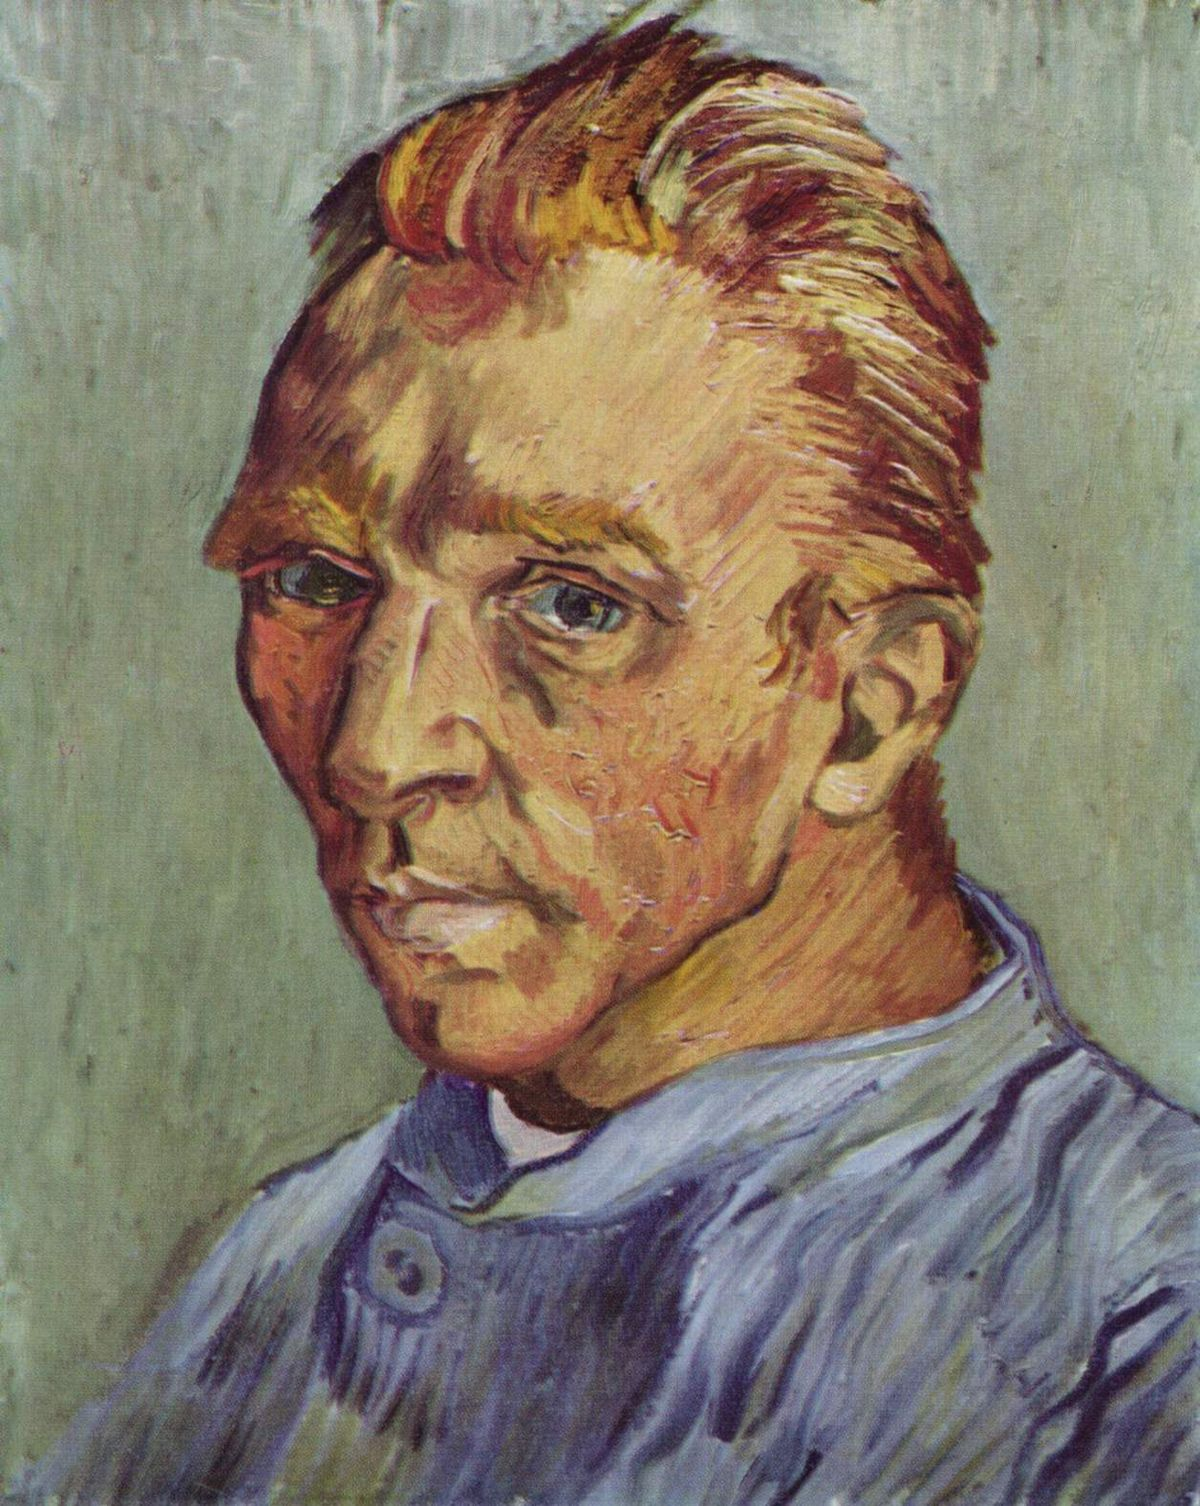 VINCENT VAN GOGH: SELF-PORTRAITS